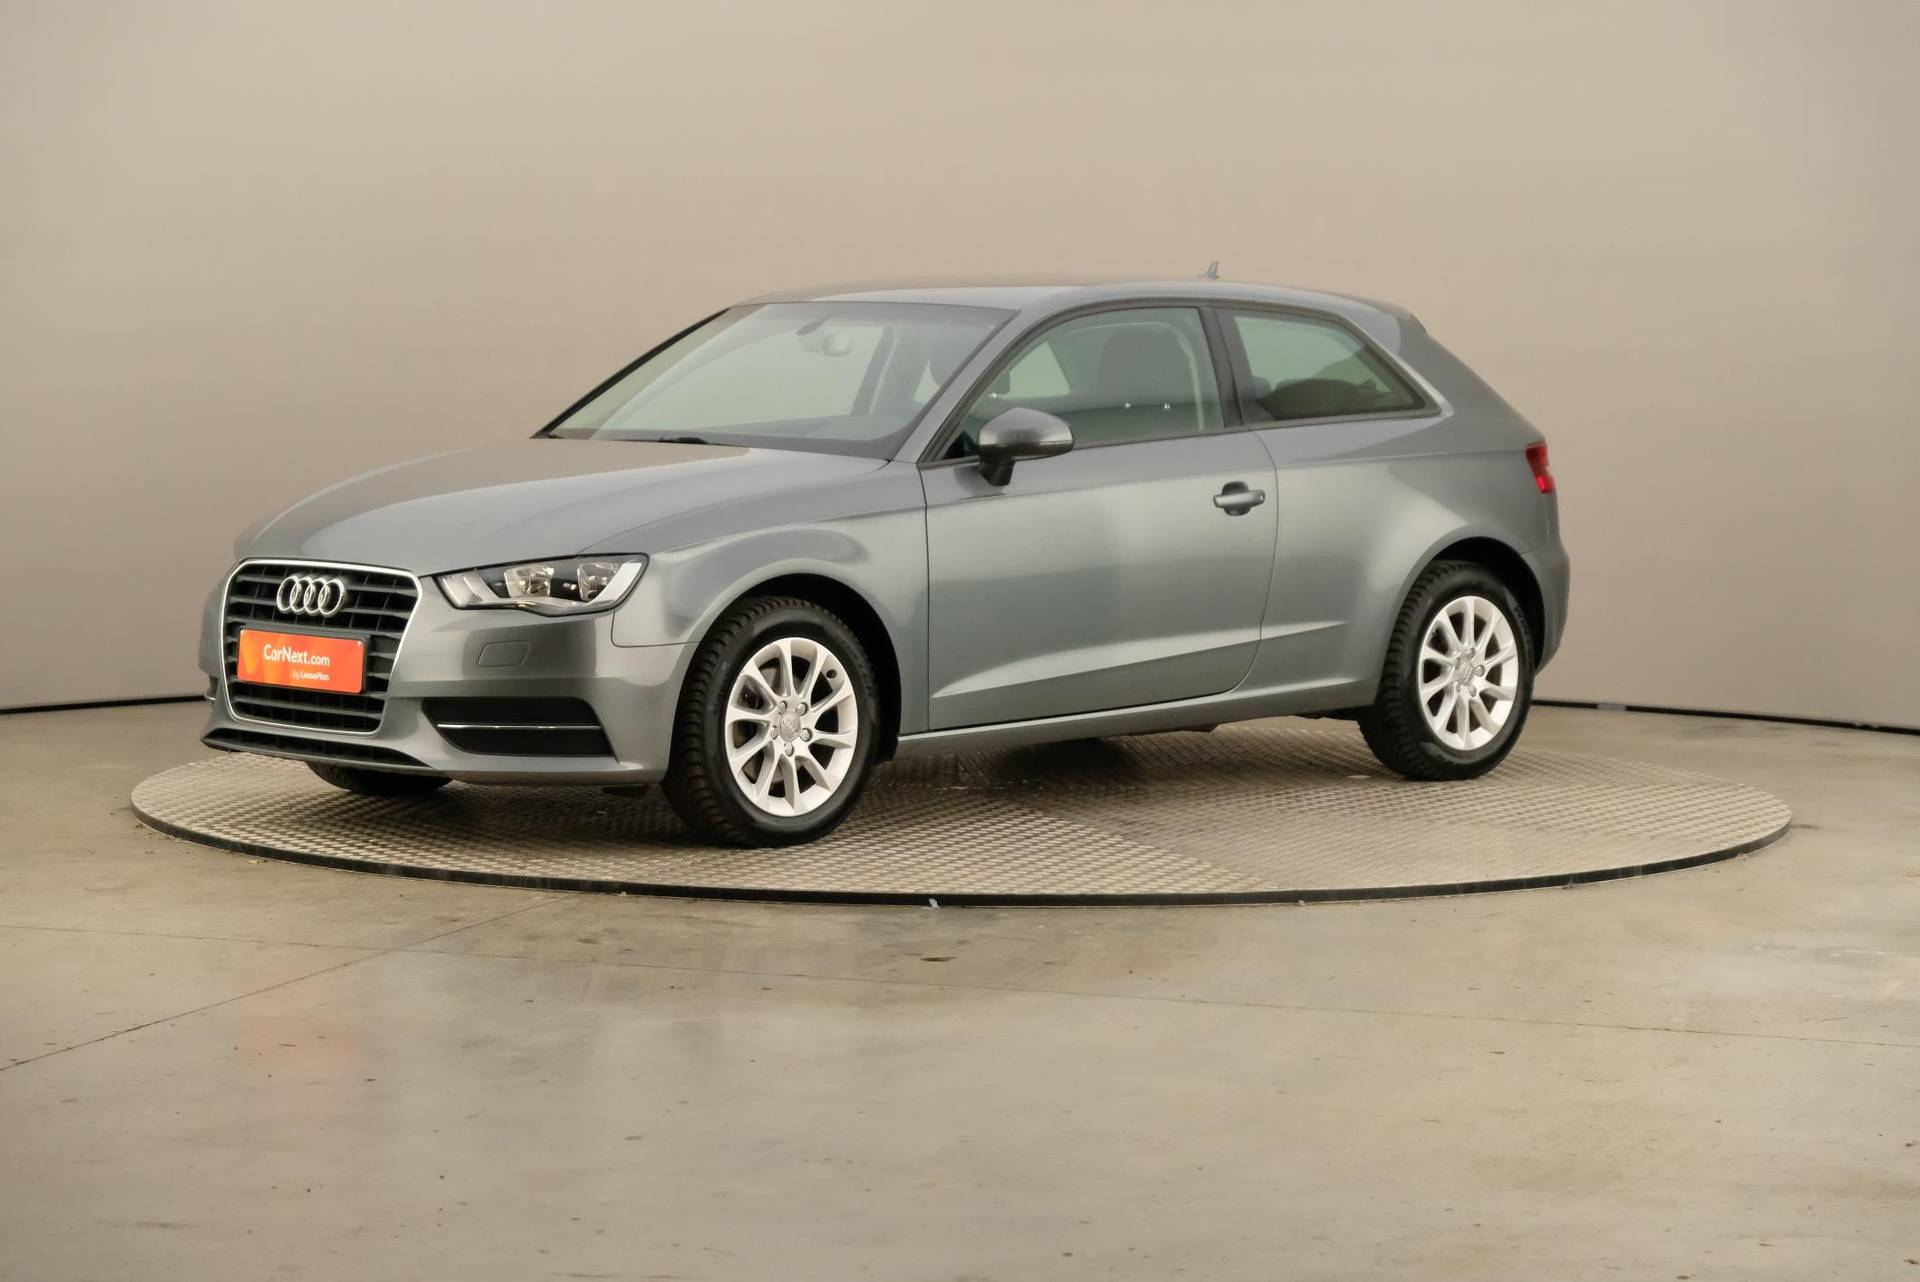 Audi A3 1.6 TDi ULTRA Attraction GPS PDC BLUETOOTH, 360-image0